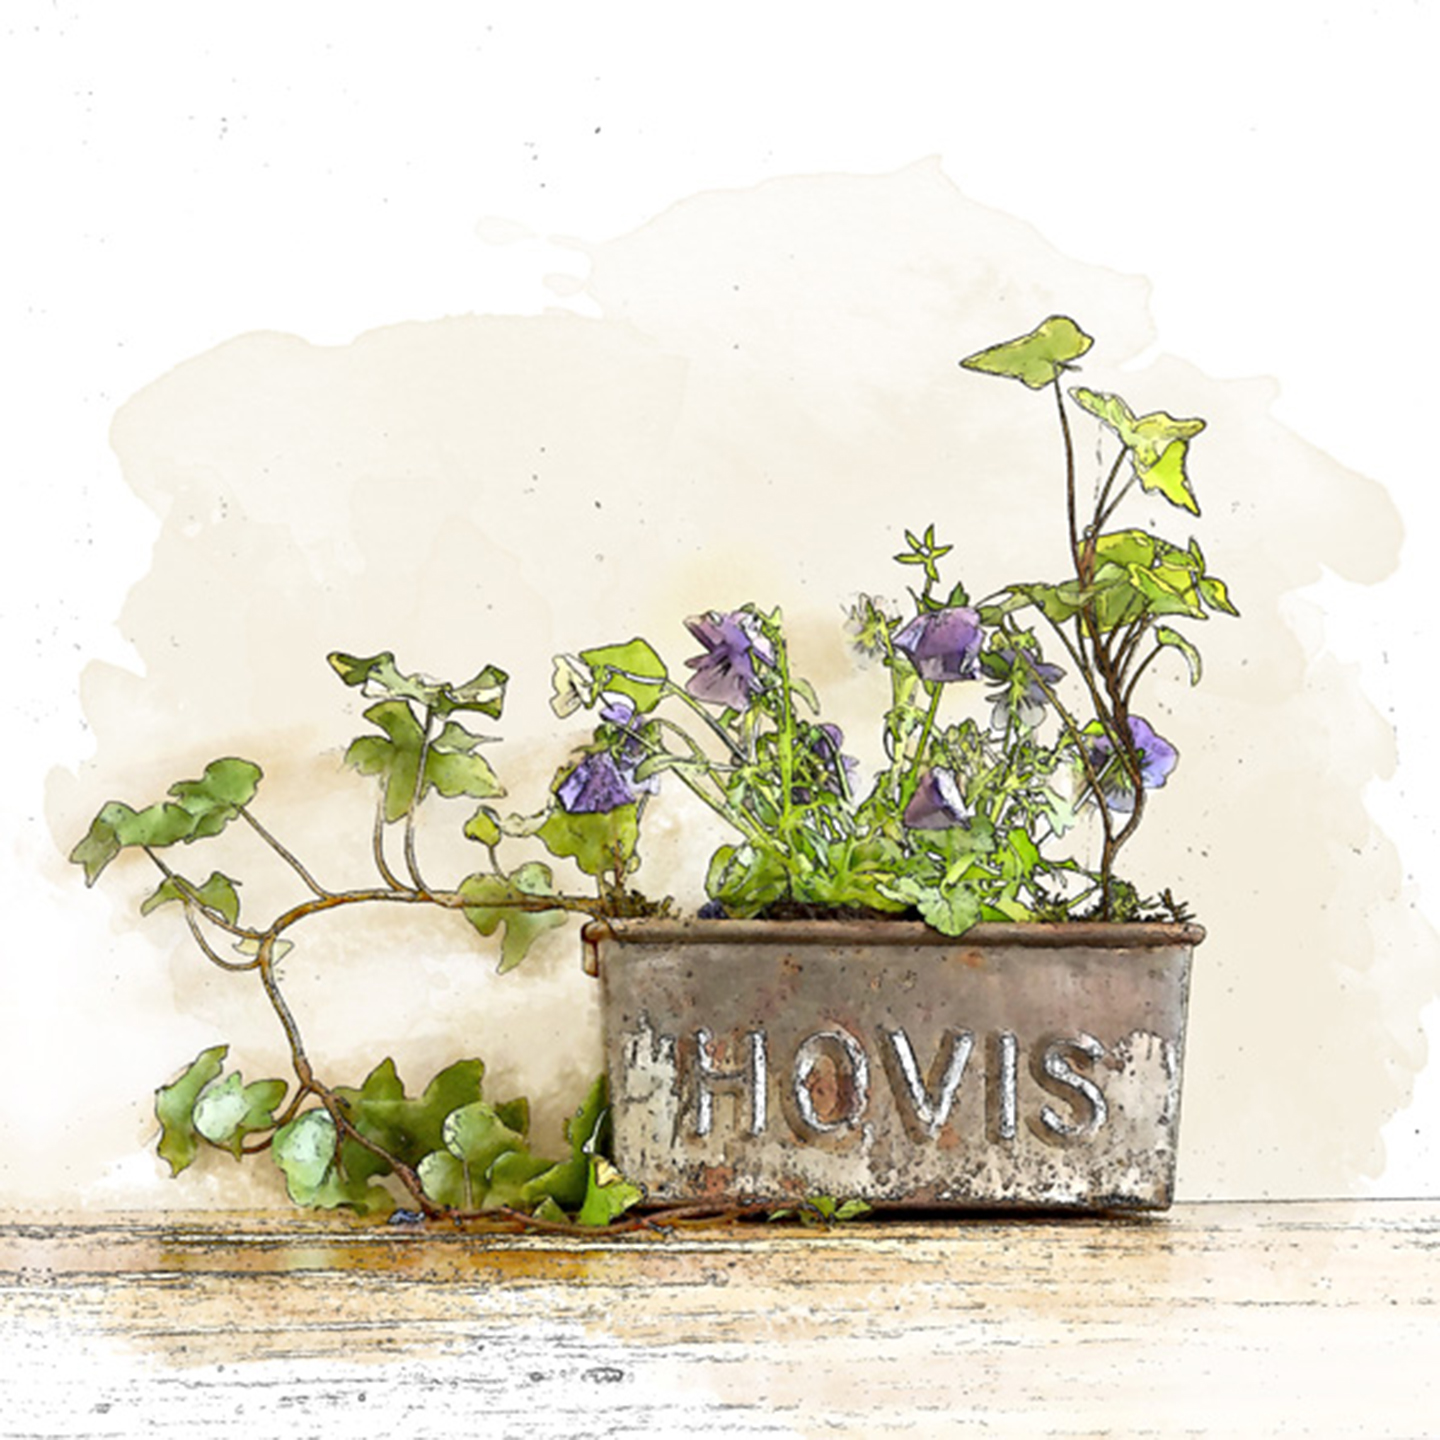 Gray-Hovis-Tin-with-Pansy-and-Ivy-1440px-wide-4